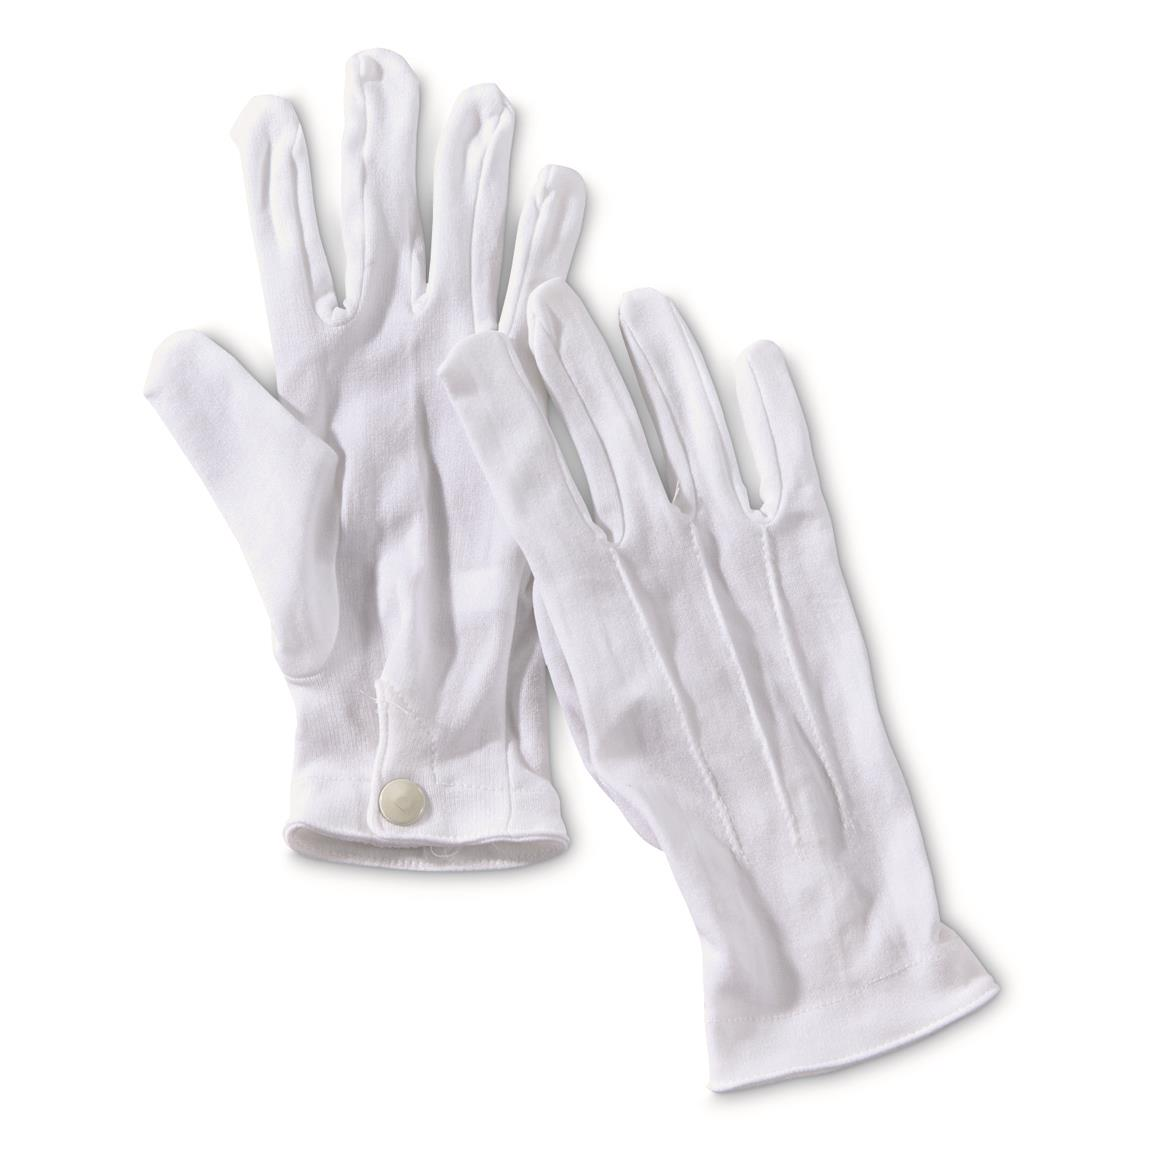 U.S. Military Surplus Parade Dress Gloves, 2 Pack, New, White